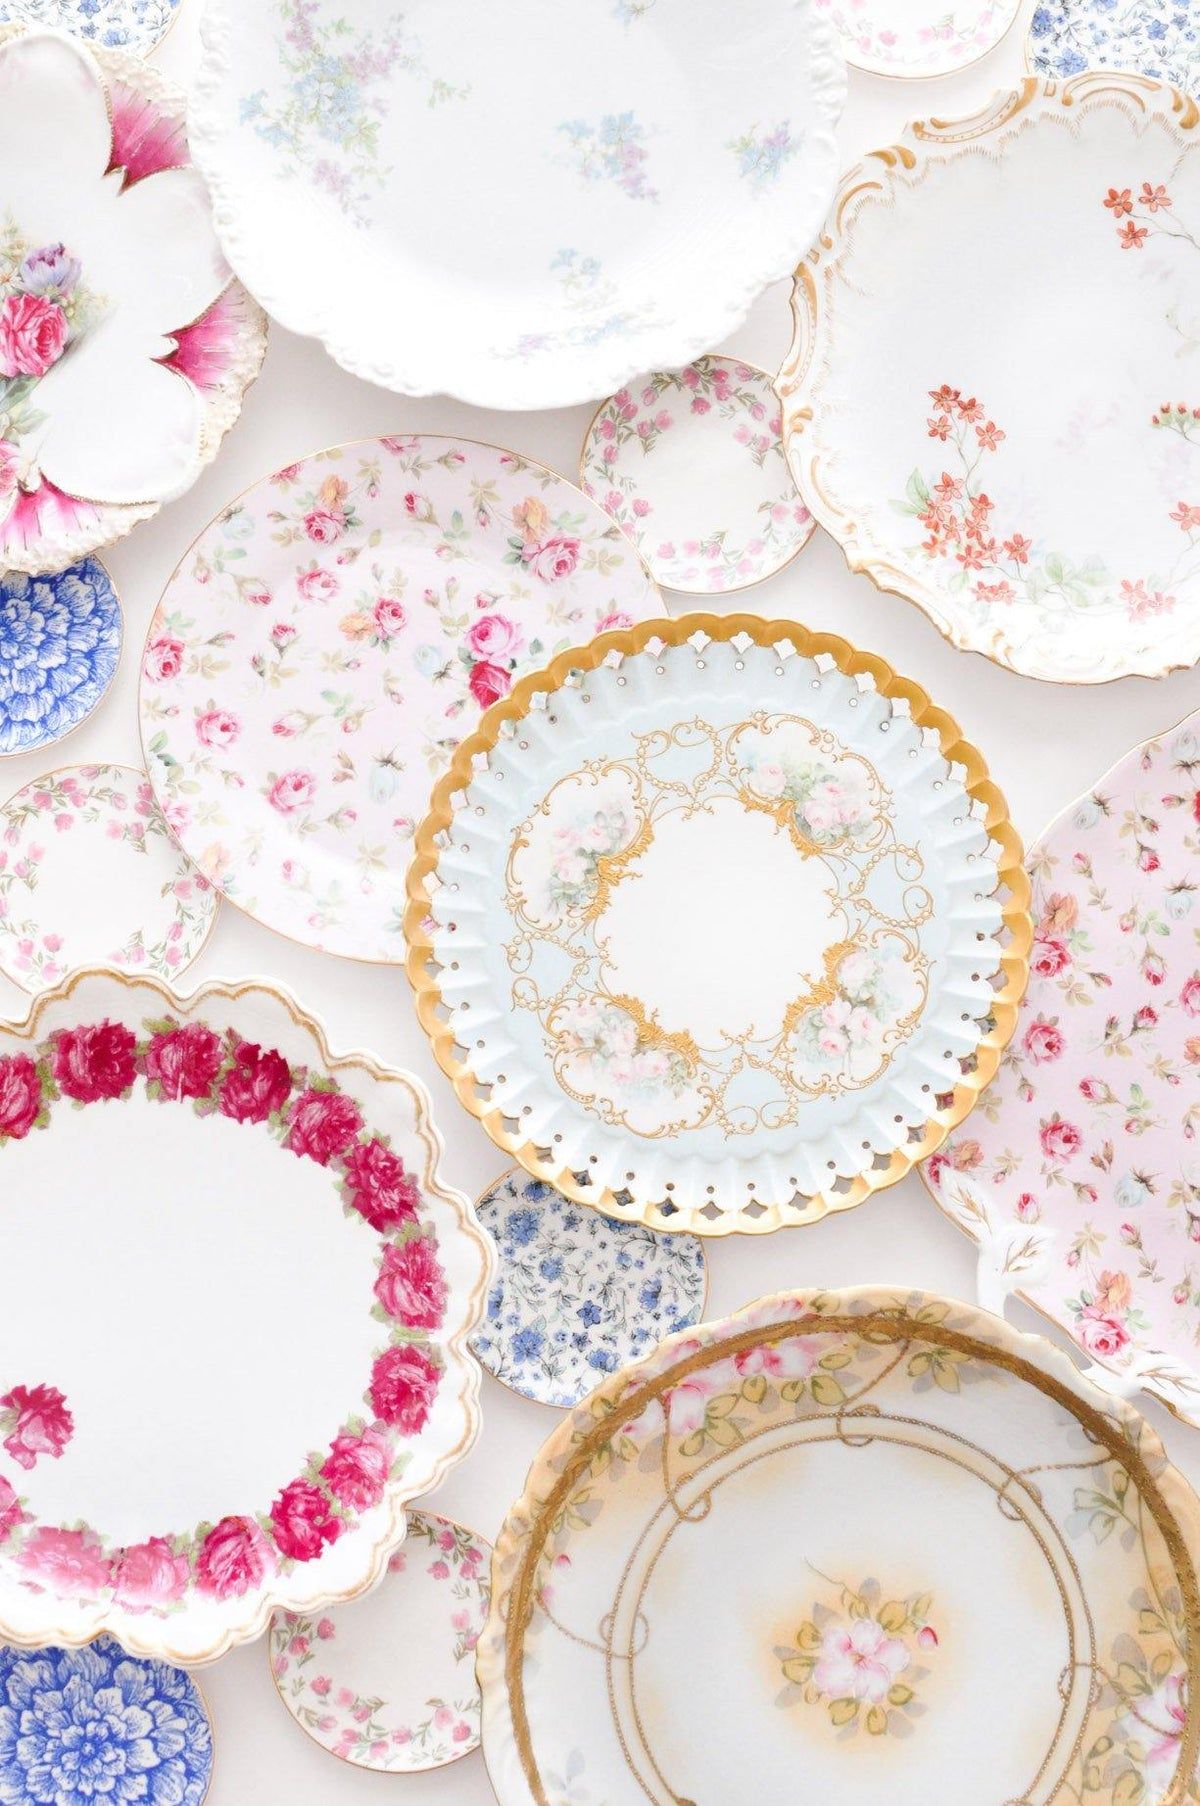 Vintage floral jewelry dishes from Sweet & Spark.